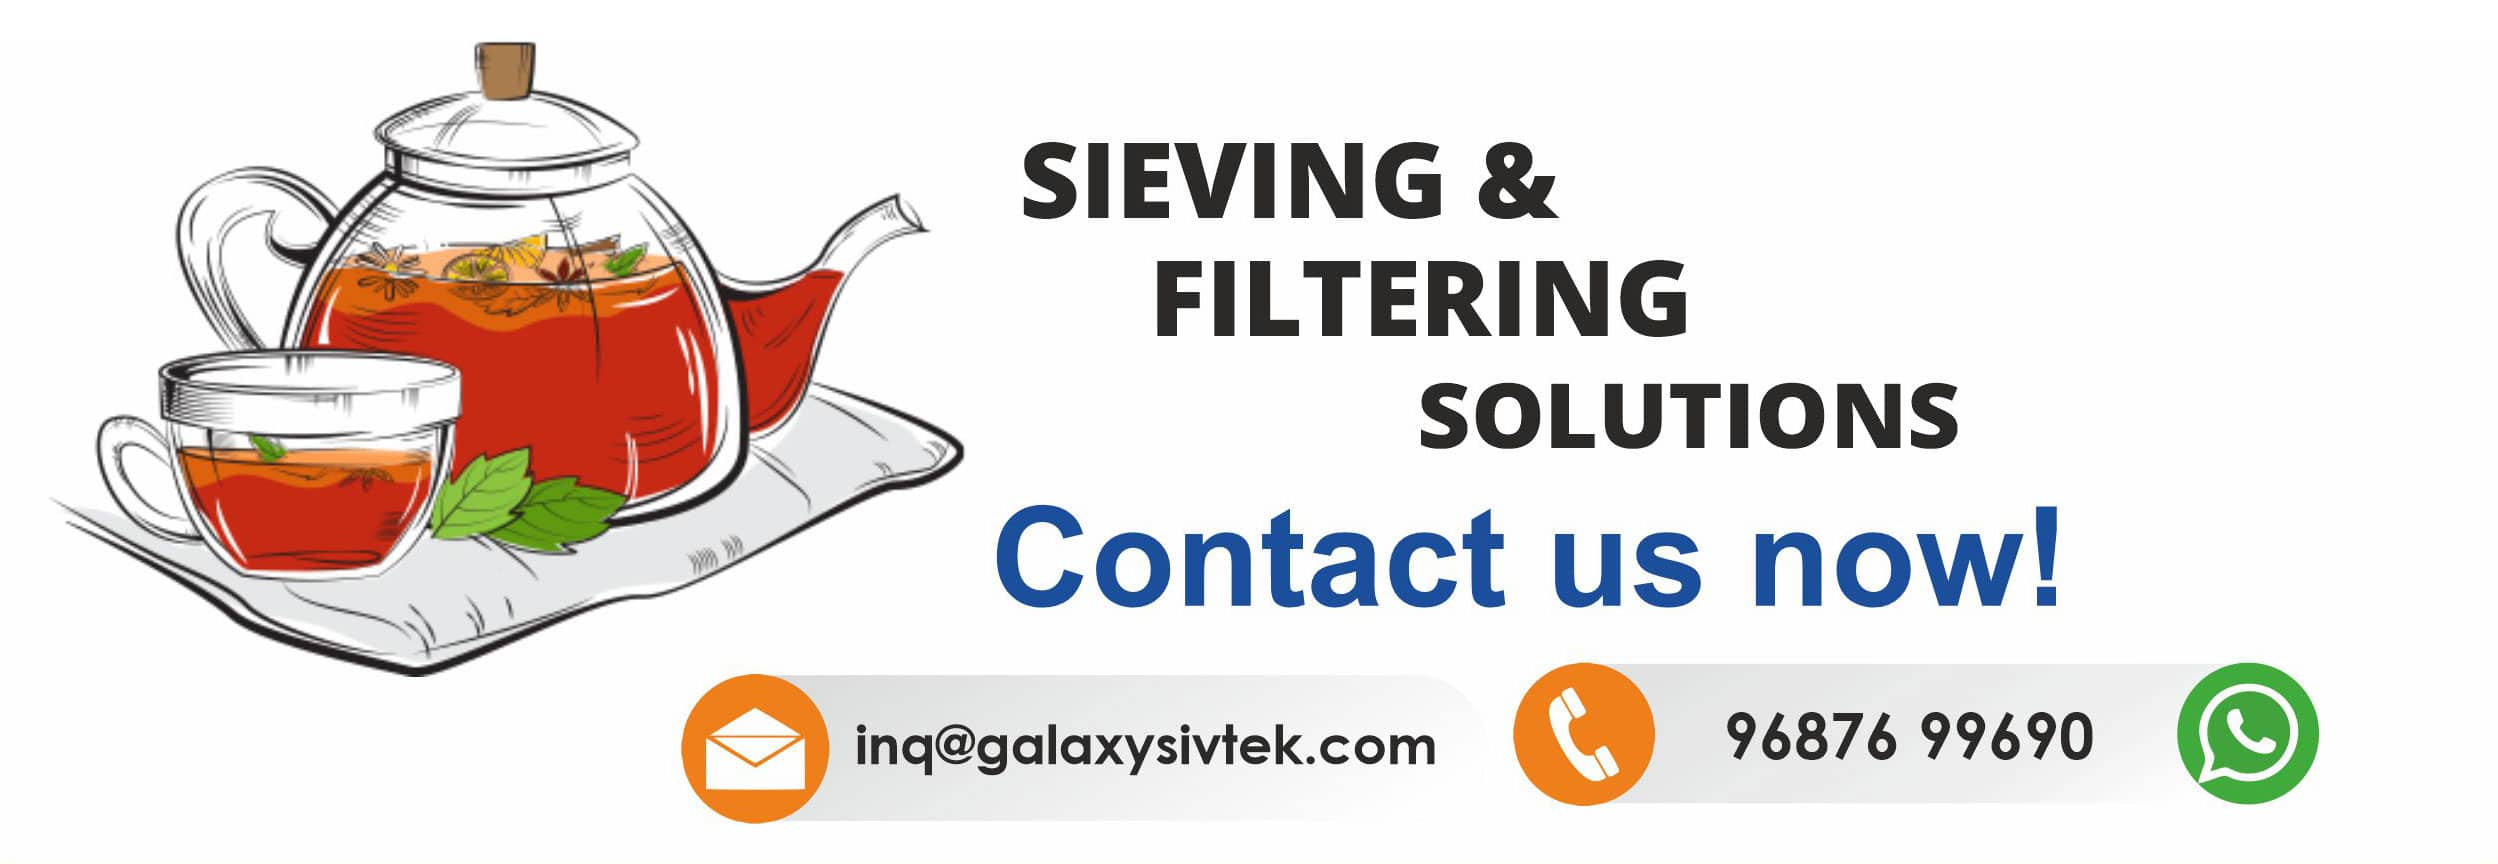 Contact us for tea filtration